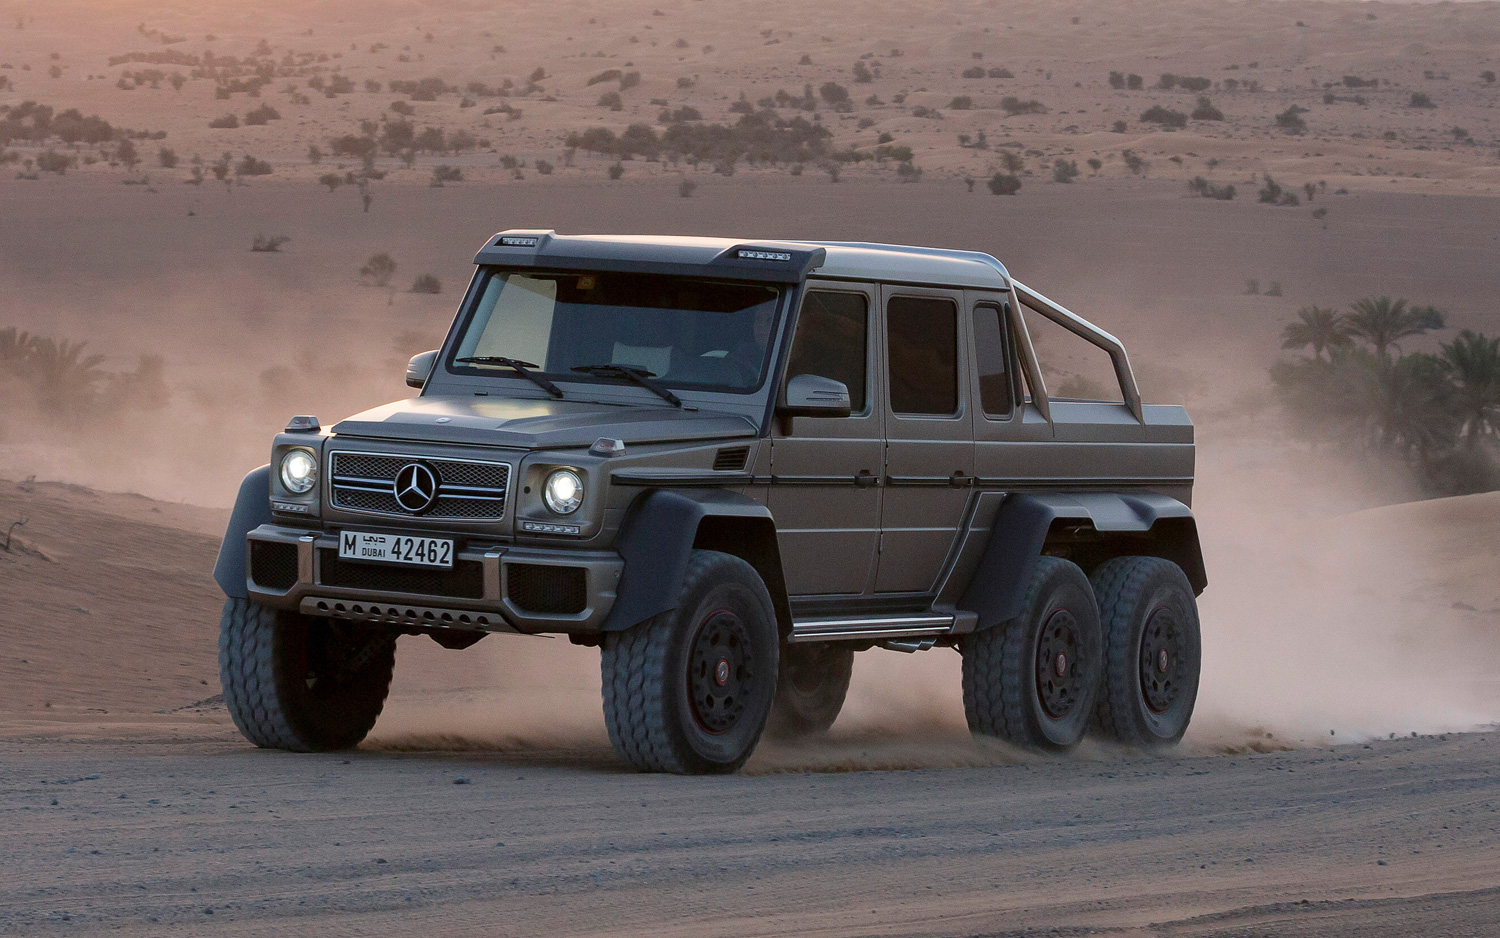 Mercedes benz g 63 amg 6x6 photos photogallery with 6 for Mercedes benz g 63 amg 6x6